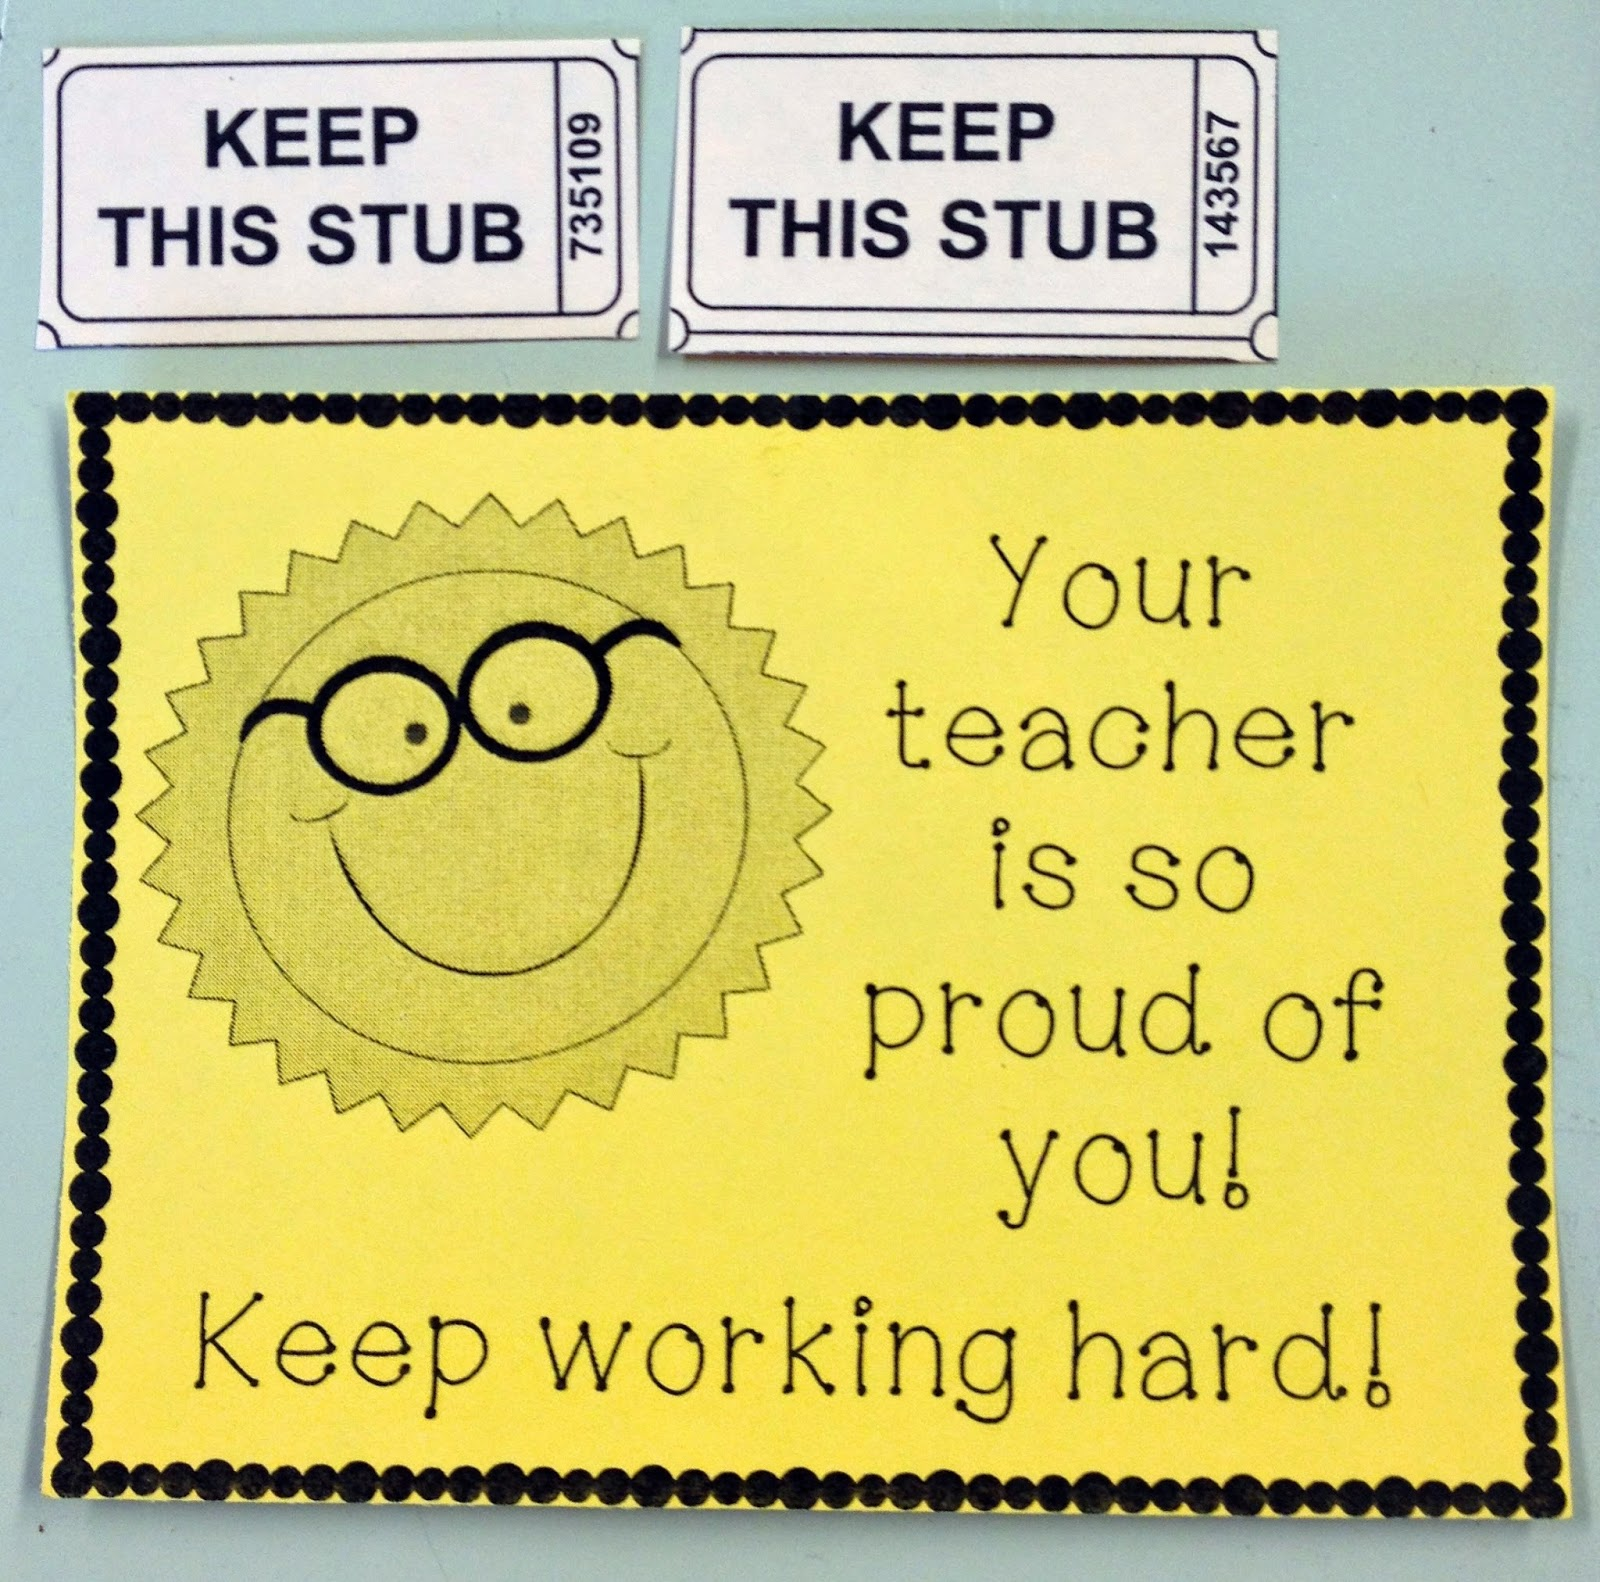 Notes Of Encouragement For Students: Sparking Student Motvation: Testing Encouragement Cards